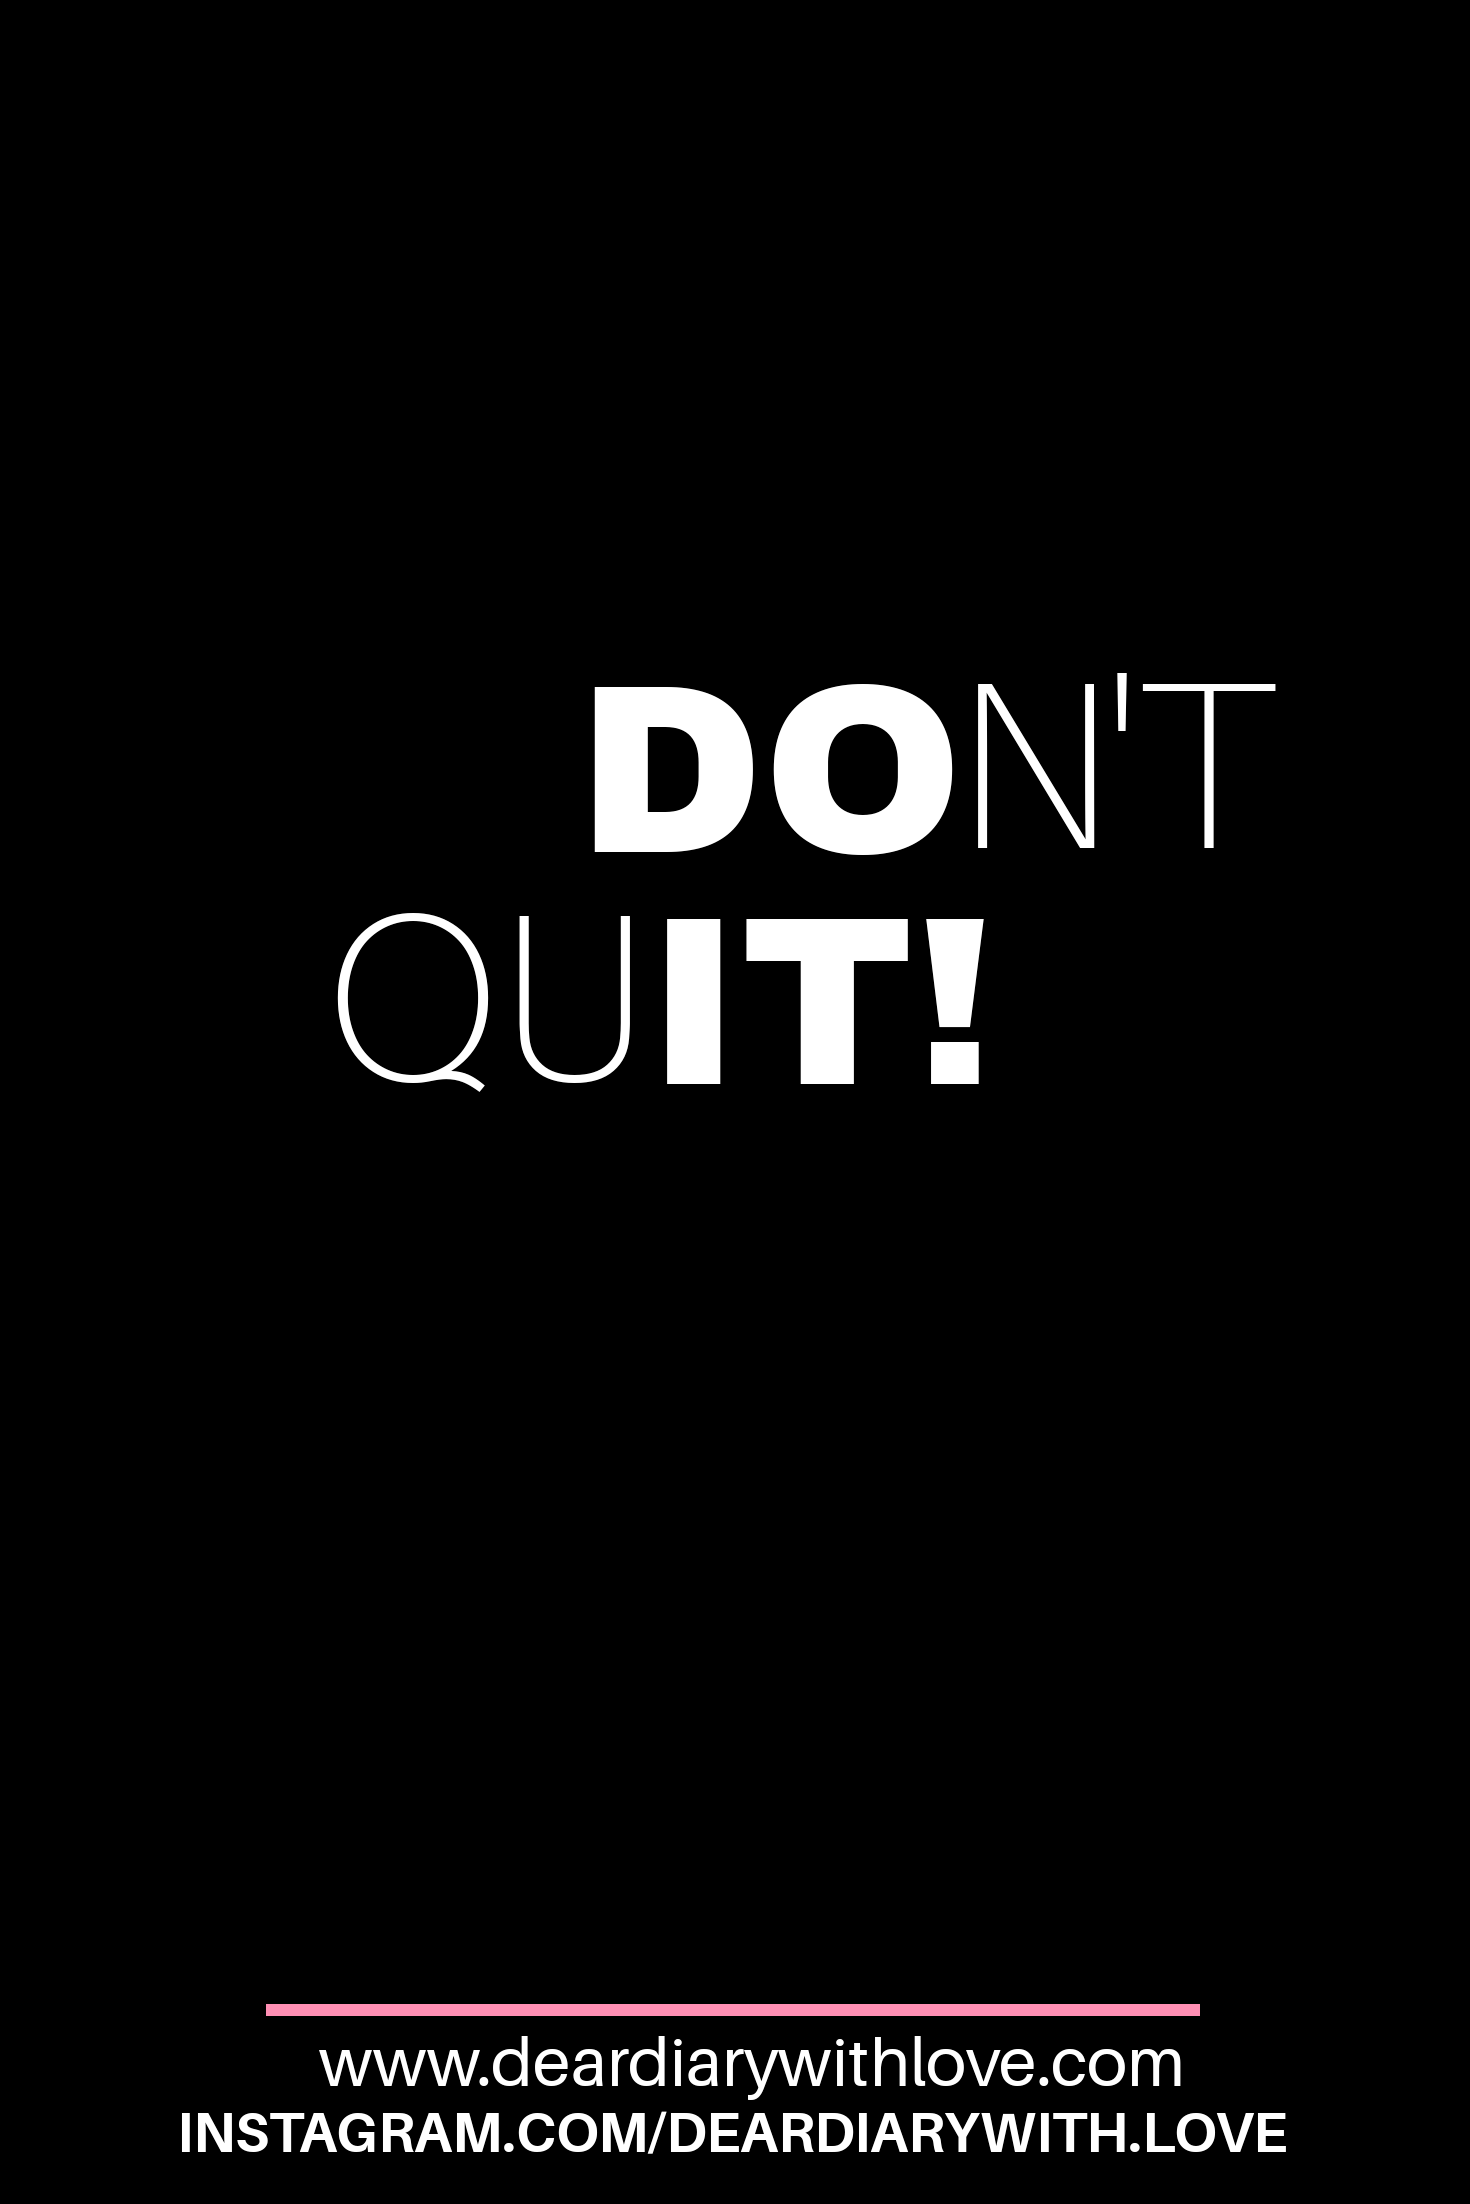 DO IT! Don't quit! | www deardiarywithlove com | #quotes